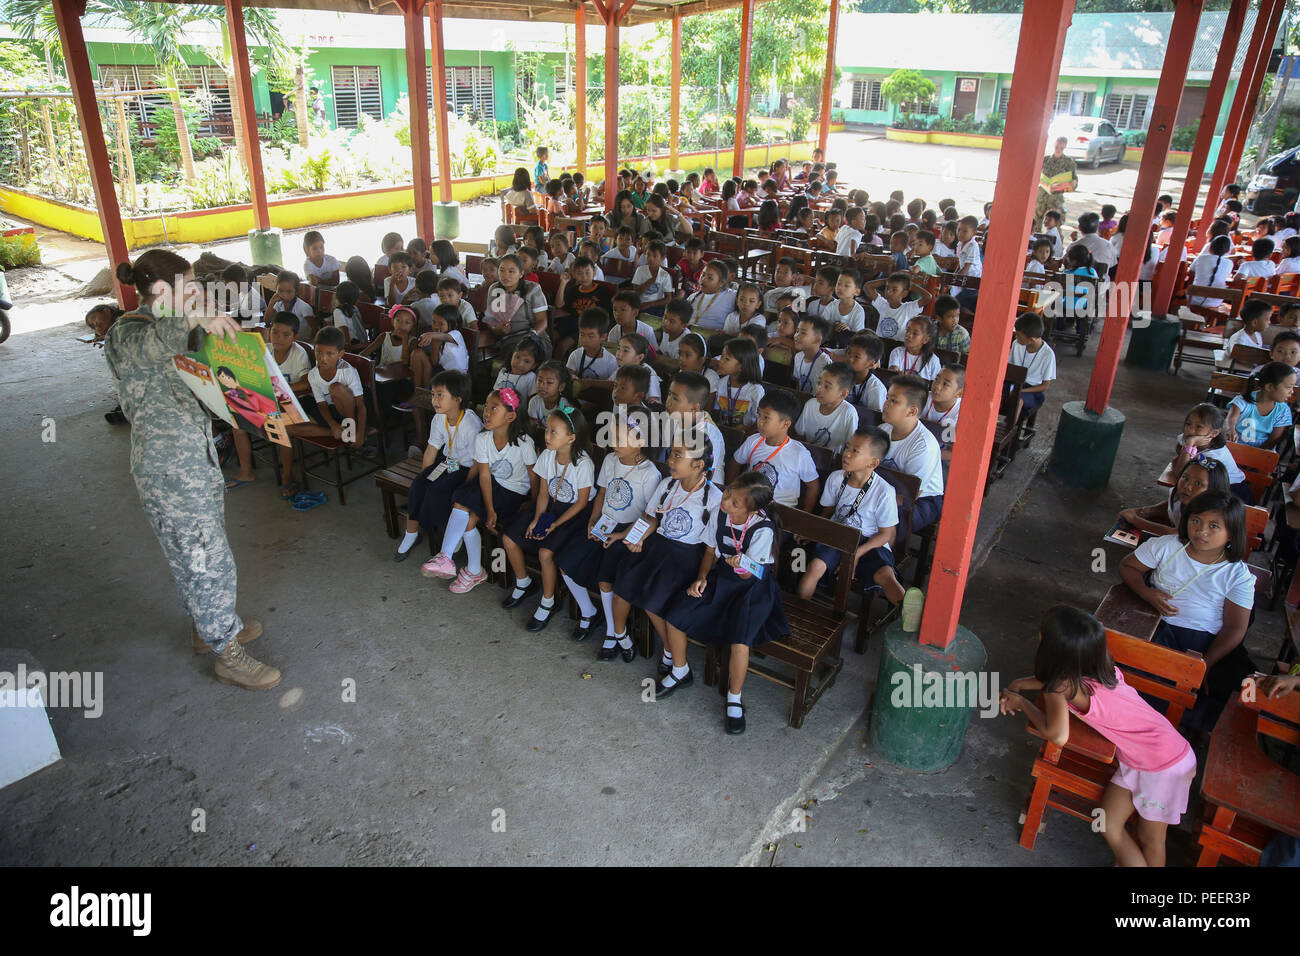 150812-M-GO800-051 SAN FERNANDO CITY, Philippines (Aug. 12, 2015) – U.S. Army Capt. Desiree Giangregorio reads to students at Pagudpud Elementary School Aug. 12. Task Force Forager will be in the Philippines until Aug. 15 providing medical and engineering assistance. Task Force Forager, embarked aboard the Military Sealift Command joint high speed vessel USNS Millinocket (JHSV 3) is serving as the secondary platform for Pacific Partnership, led by an expeditionary command element from the Navy's 30th Naval Construction Regiment (30 NCR) from Port Hueneme, Calif. Now in its 10th iteration, Paci - Stock Image